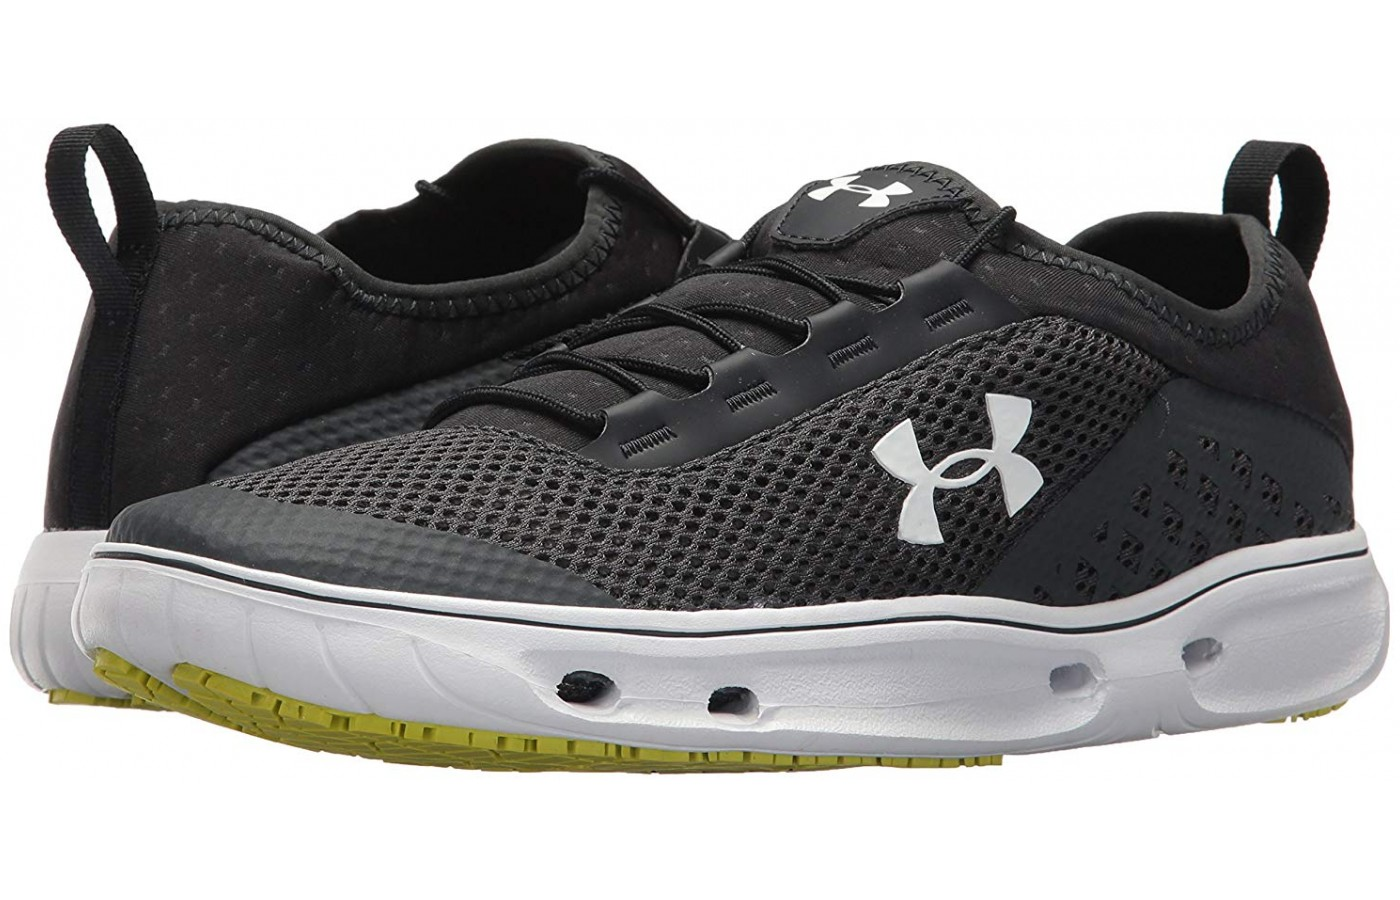 Under Armour Kilchis Women/'s Shoe Neptune New Marlin Blue Elemental